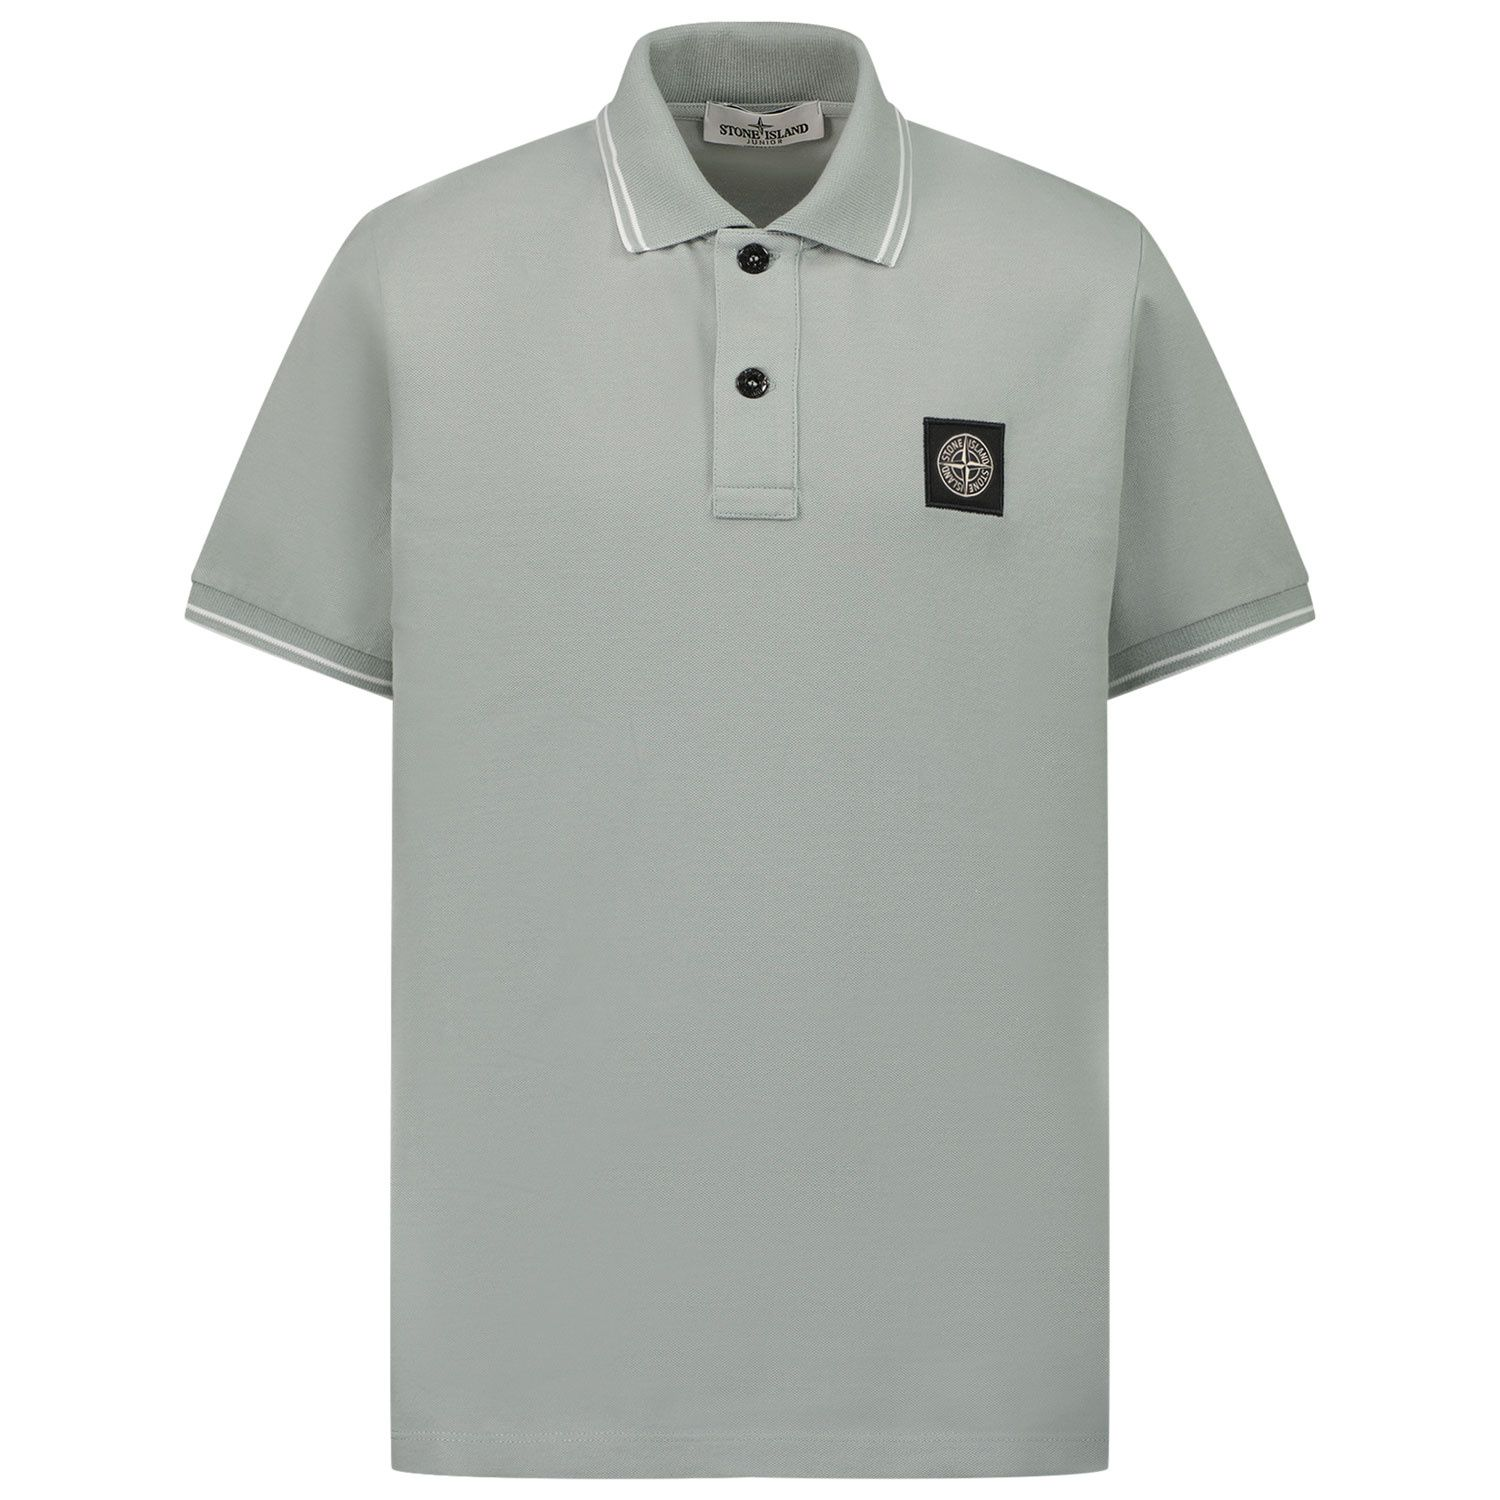 Picture of Stone Island 21348 kids polo shirt light gray